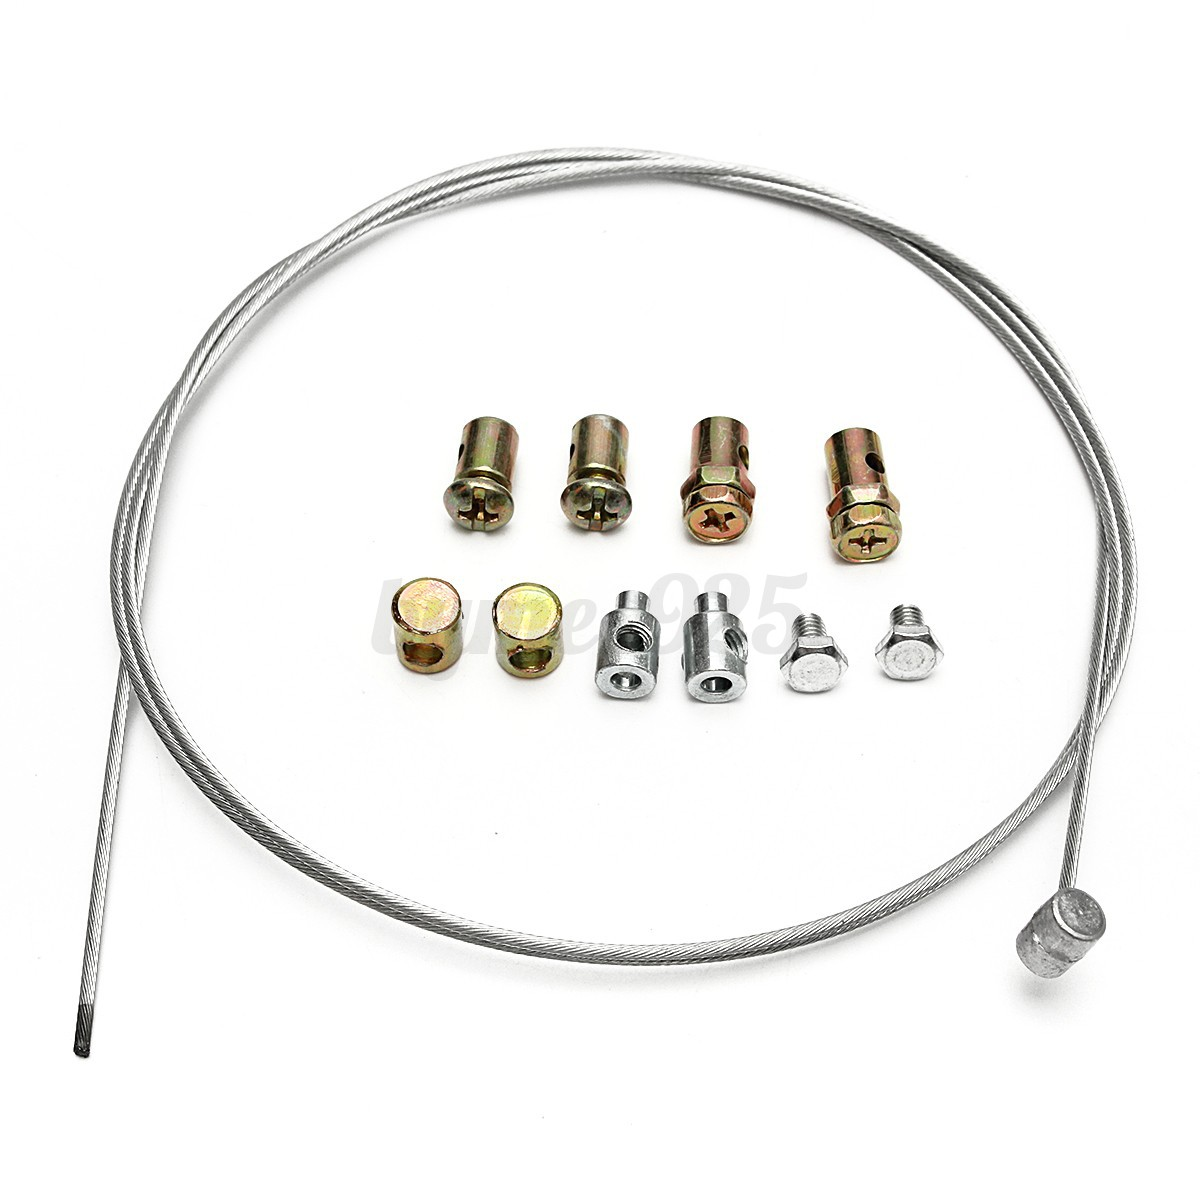 Motorcycle Emergency Throttle Cable Repair Kit for YAMAHA